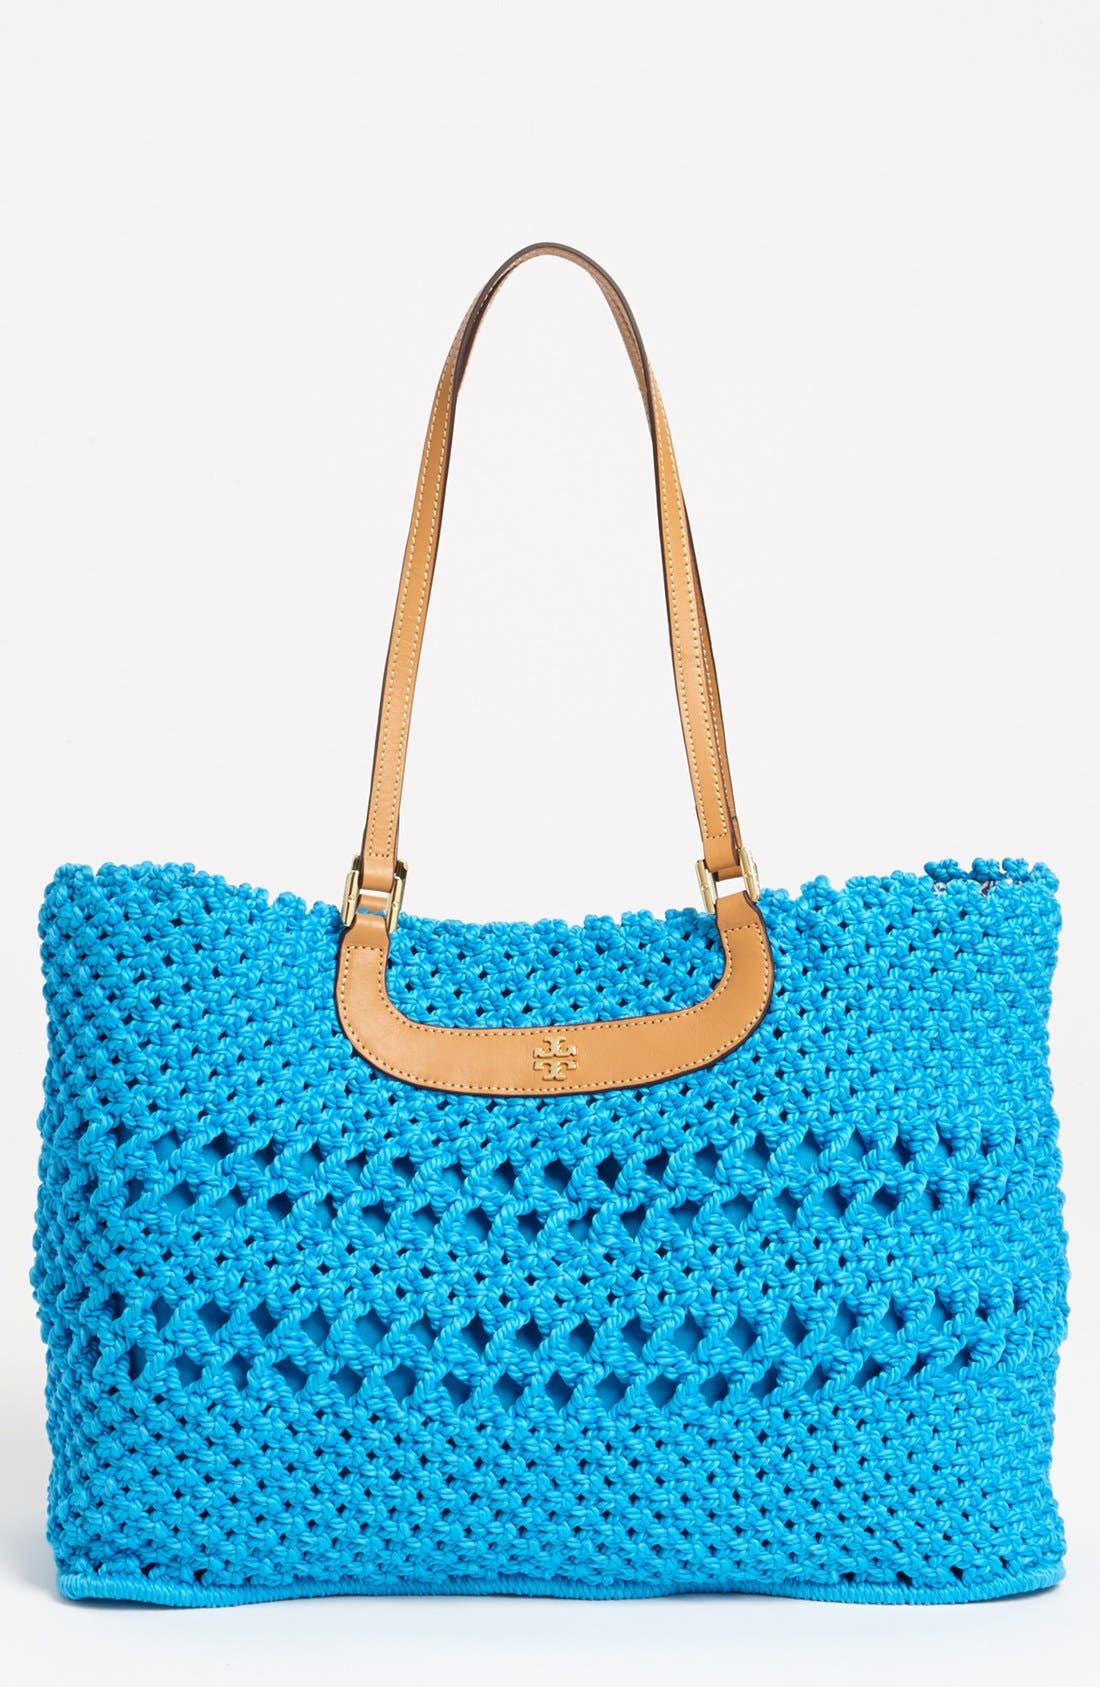 Main Image - Tory Burch 'Dawson - Large' Crocheted Tote